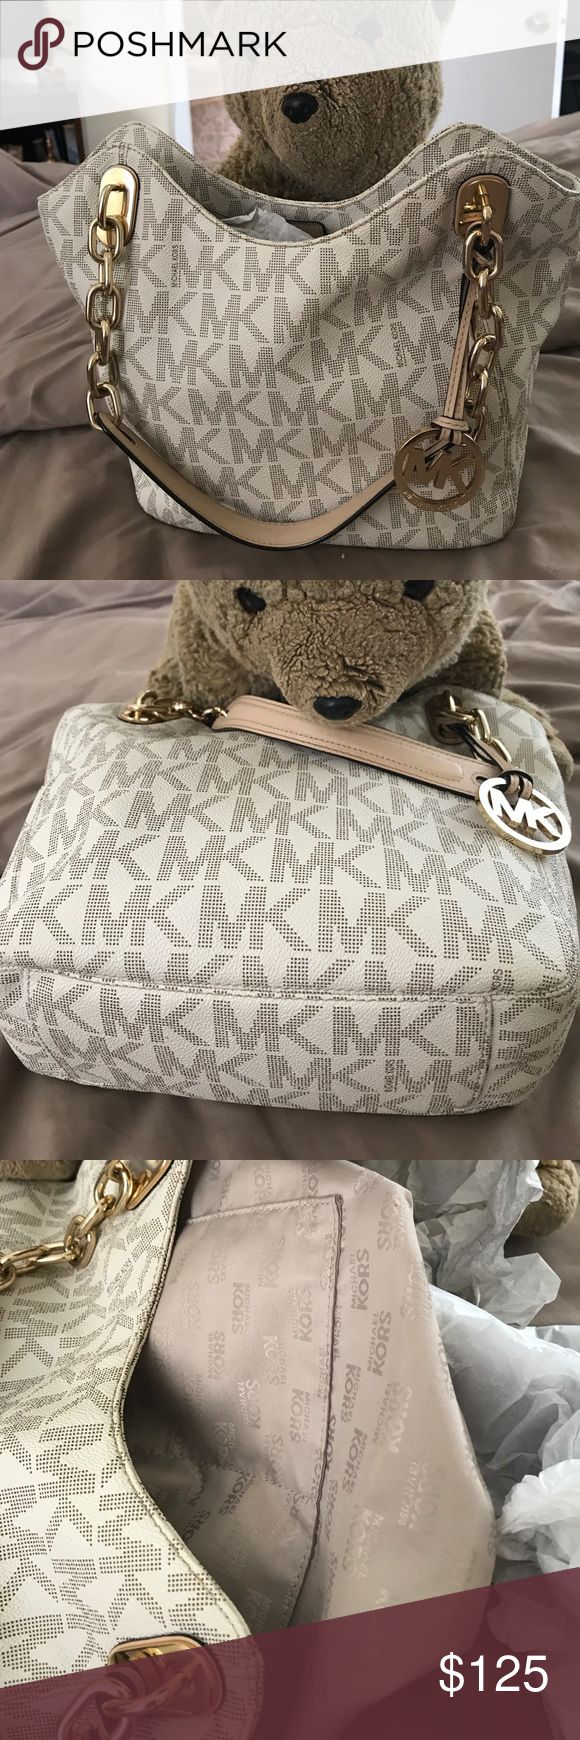 Michael Kors white logo handbag 👜 Great Med size.   White w logo, eventho its from 2 seasons ago still good looking bag.    Smoke free.  No tears no stain.   Clean inside.  I take care of my bags. PRICE FIRM 👜👜👜👜 KORS Michael Kors Bags Shoulder Bags